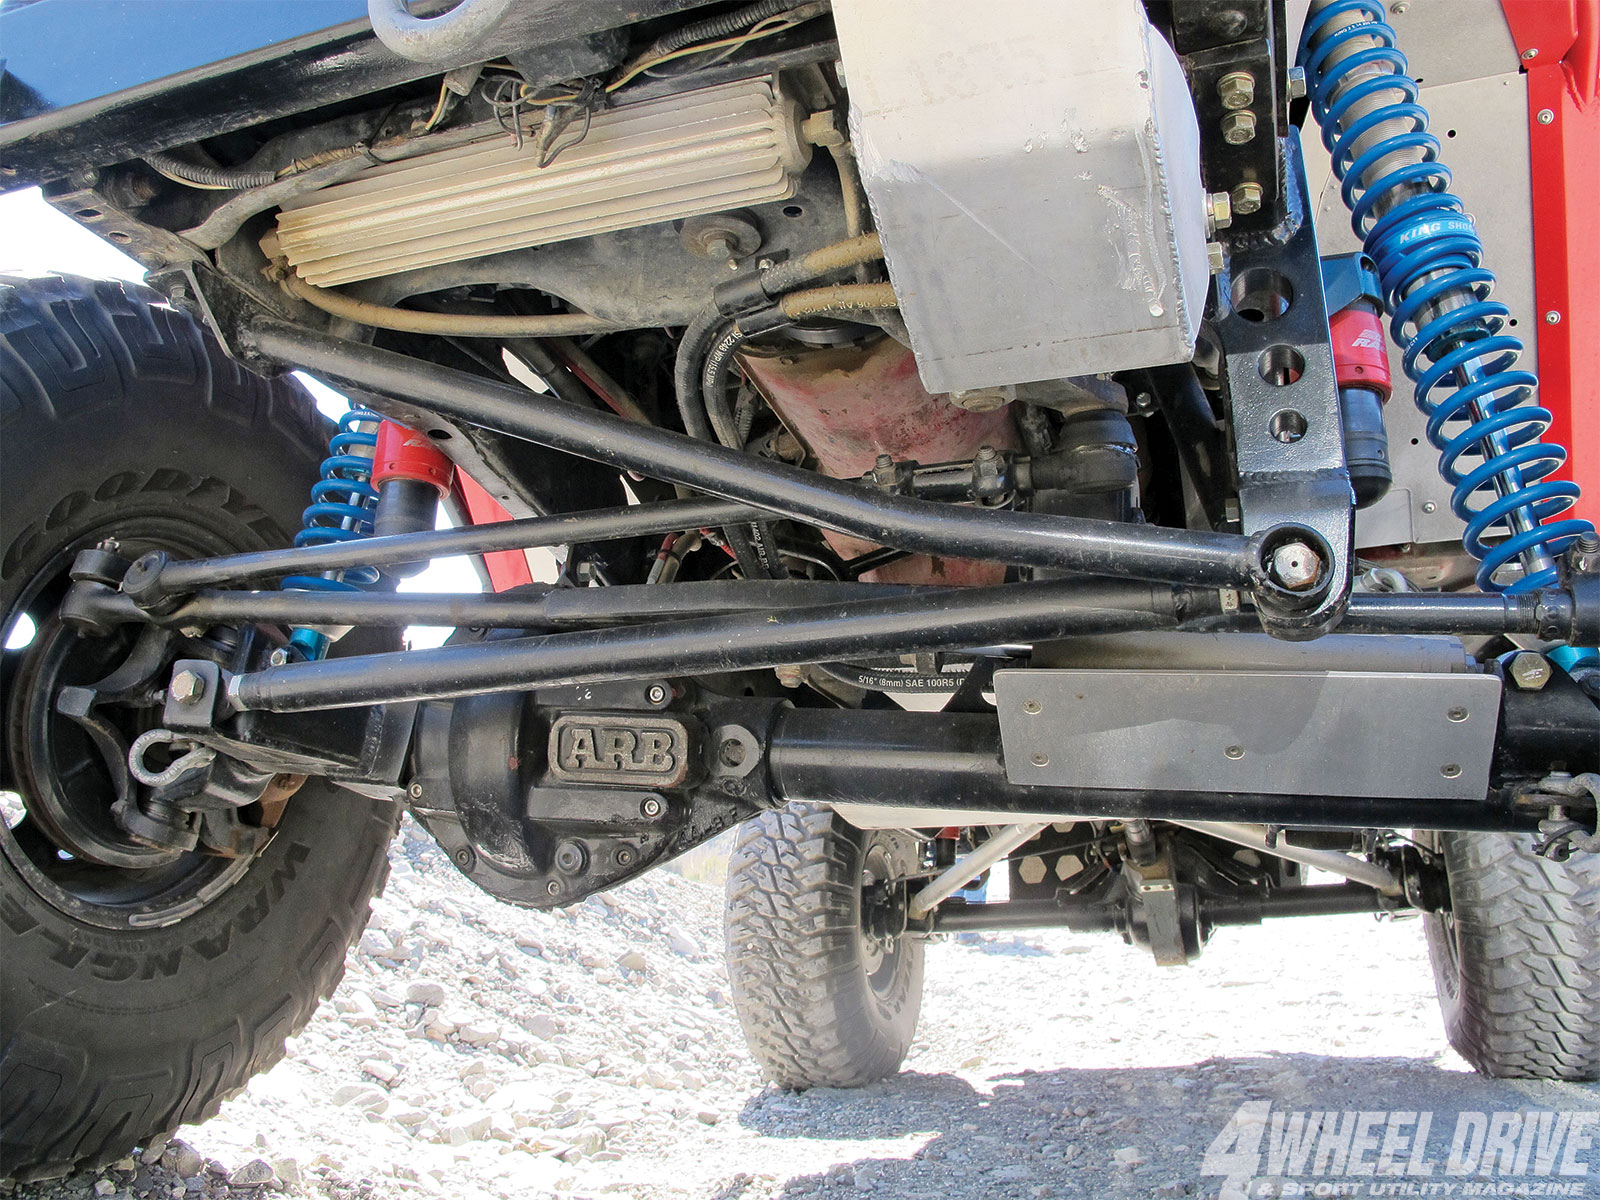 1306 4wd 06+1986 jeep cj 7+dana 44 front axle